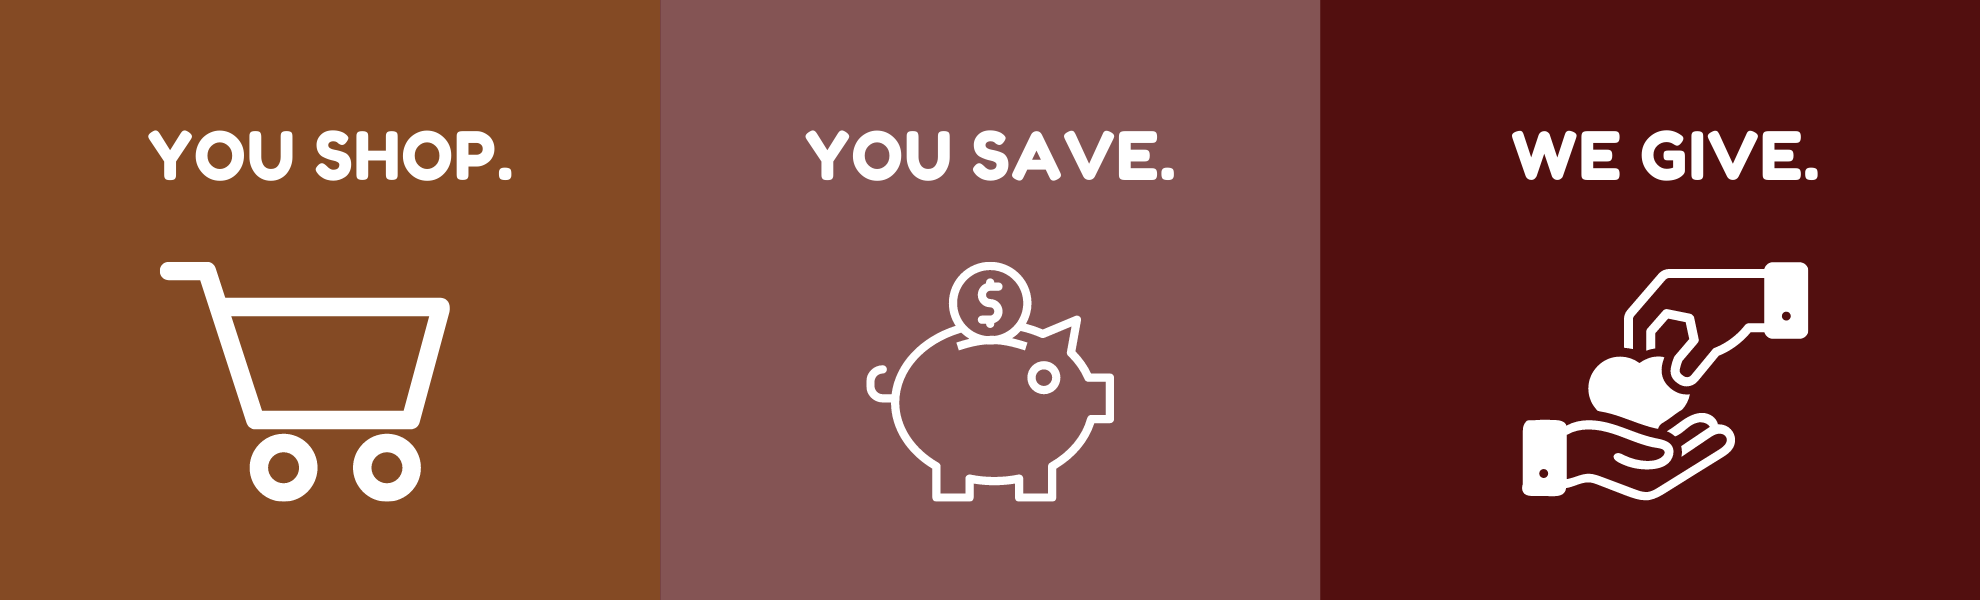 You Shop. You Save. We Give. | 800X